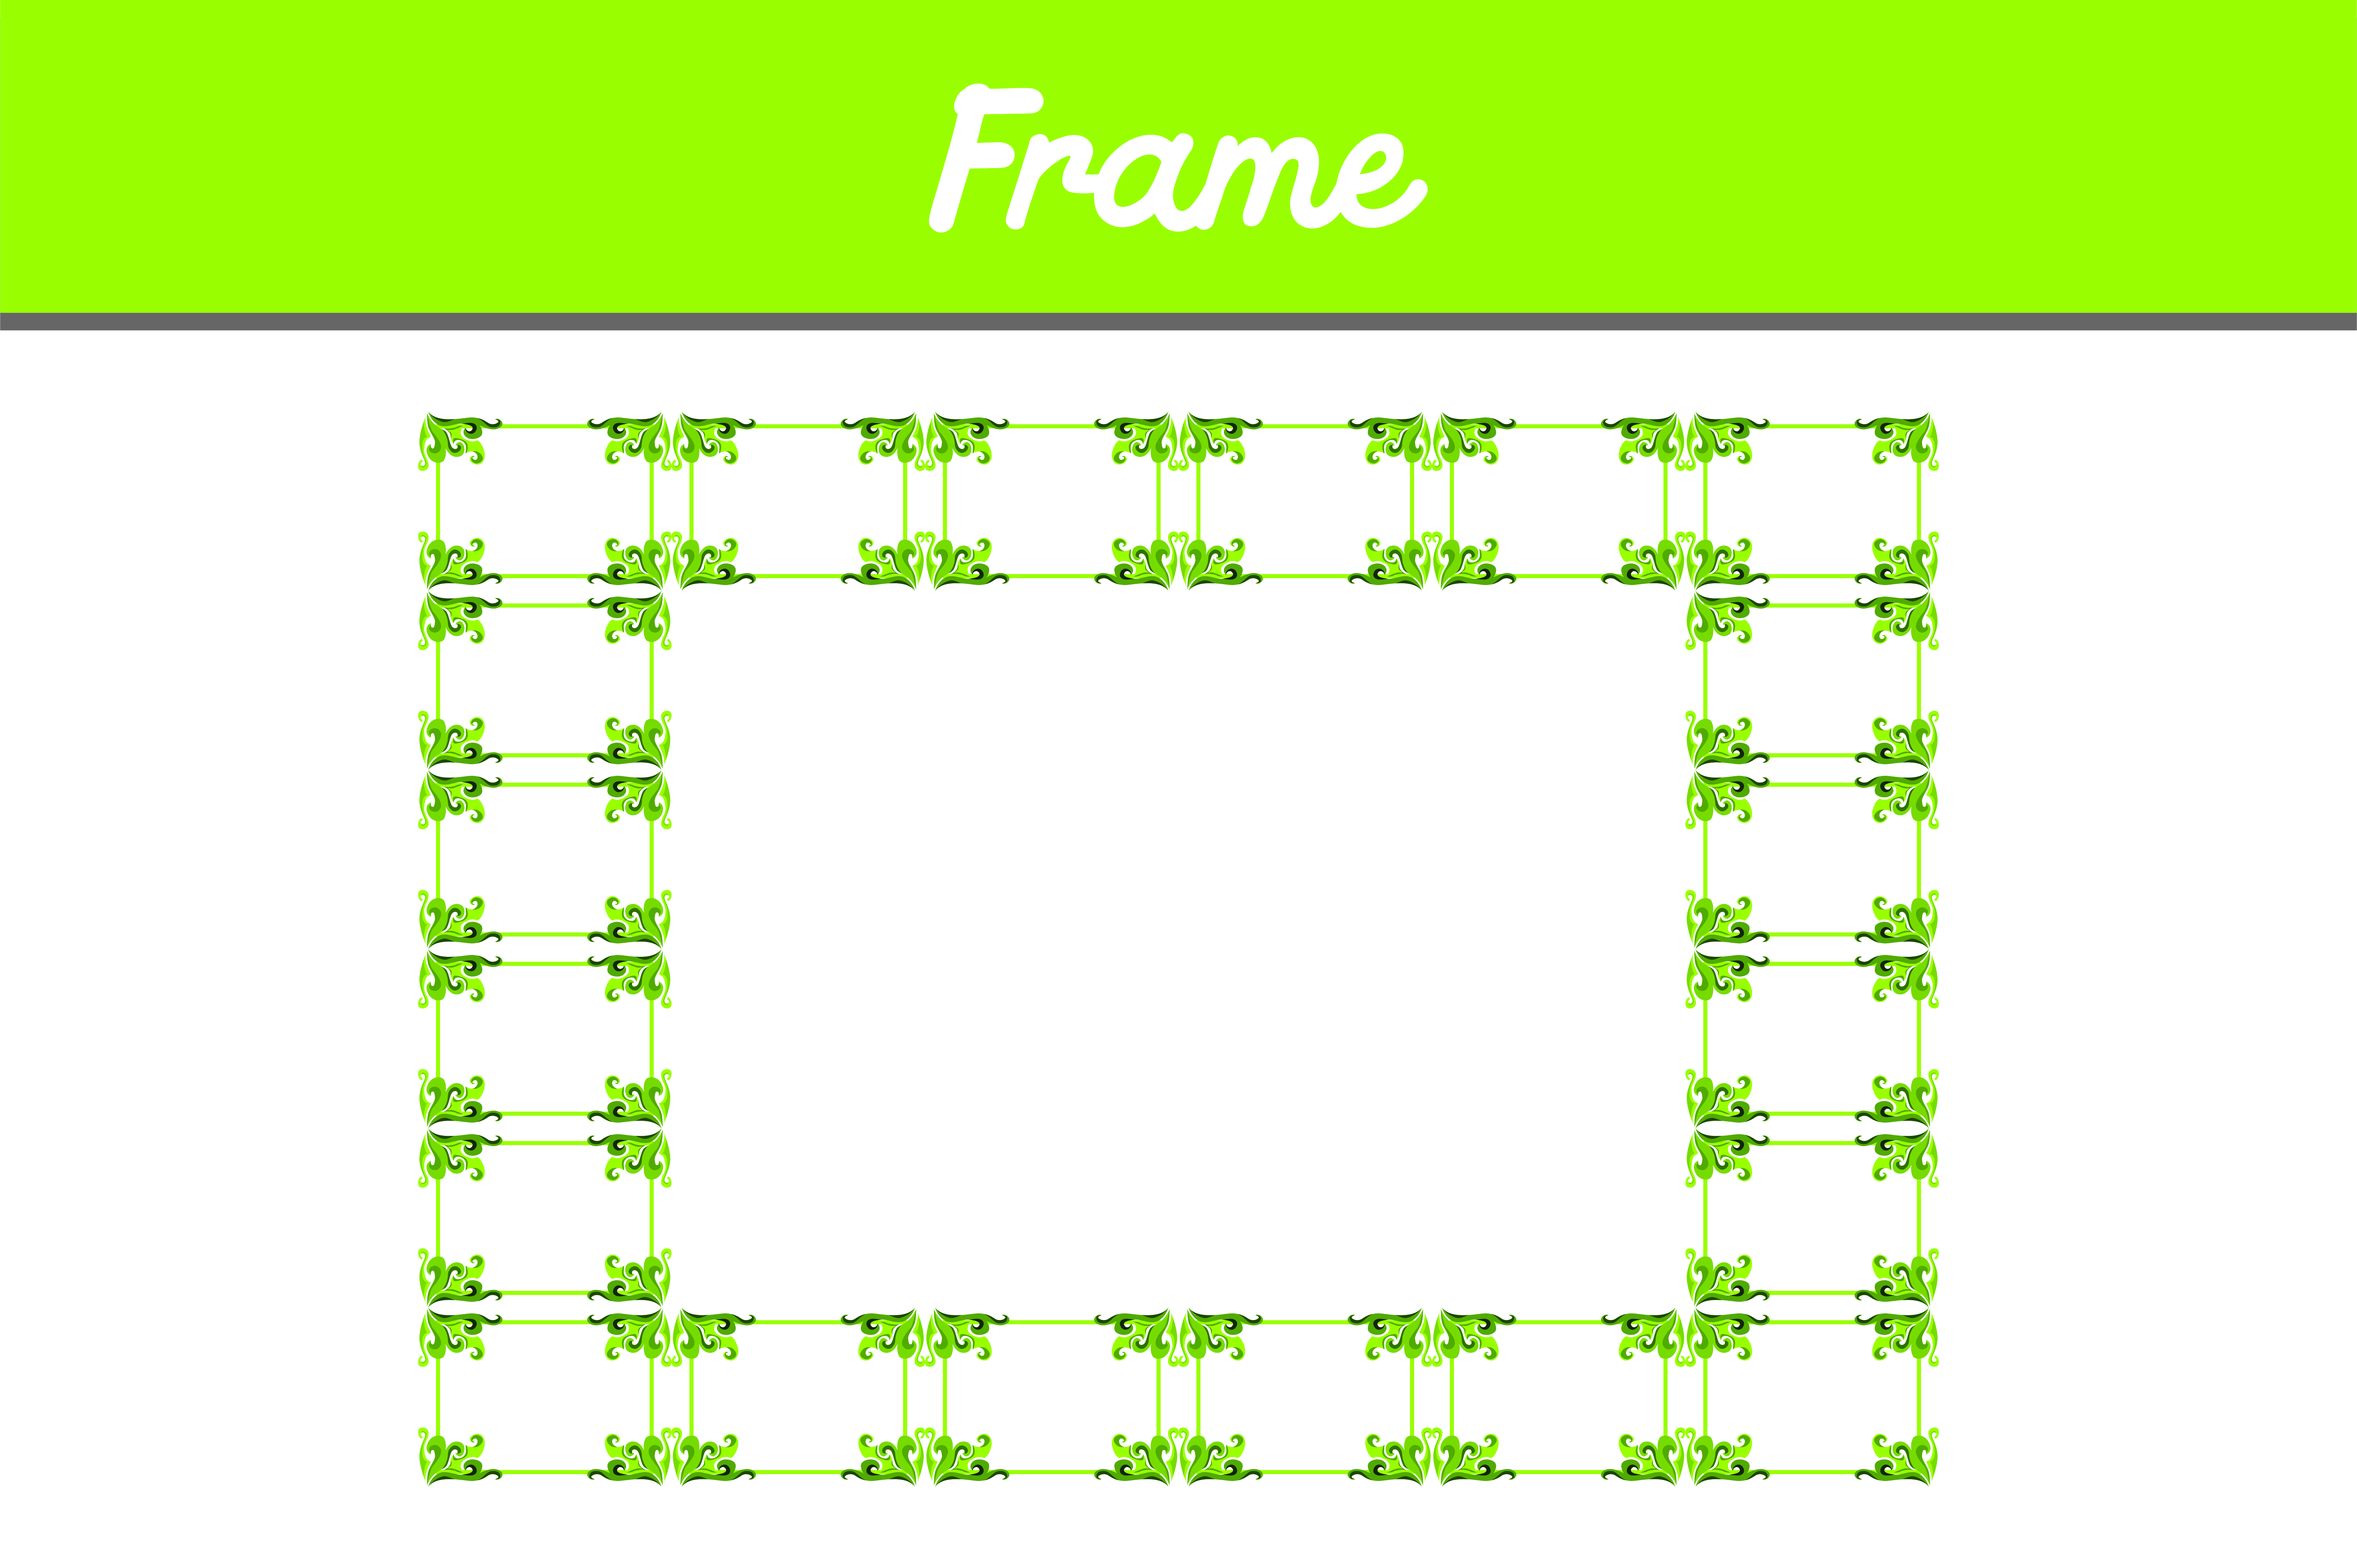 Download Free Green Border Frame Ornament Graphic By Arief Sapta Adjie Ii for Cricut Explore, Silhouette and other cutting machines.